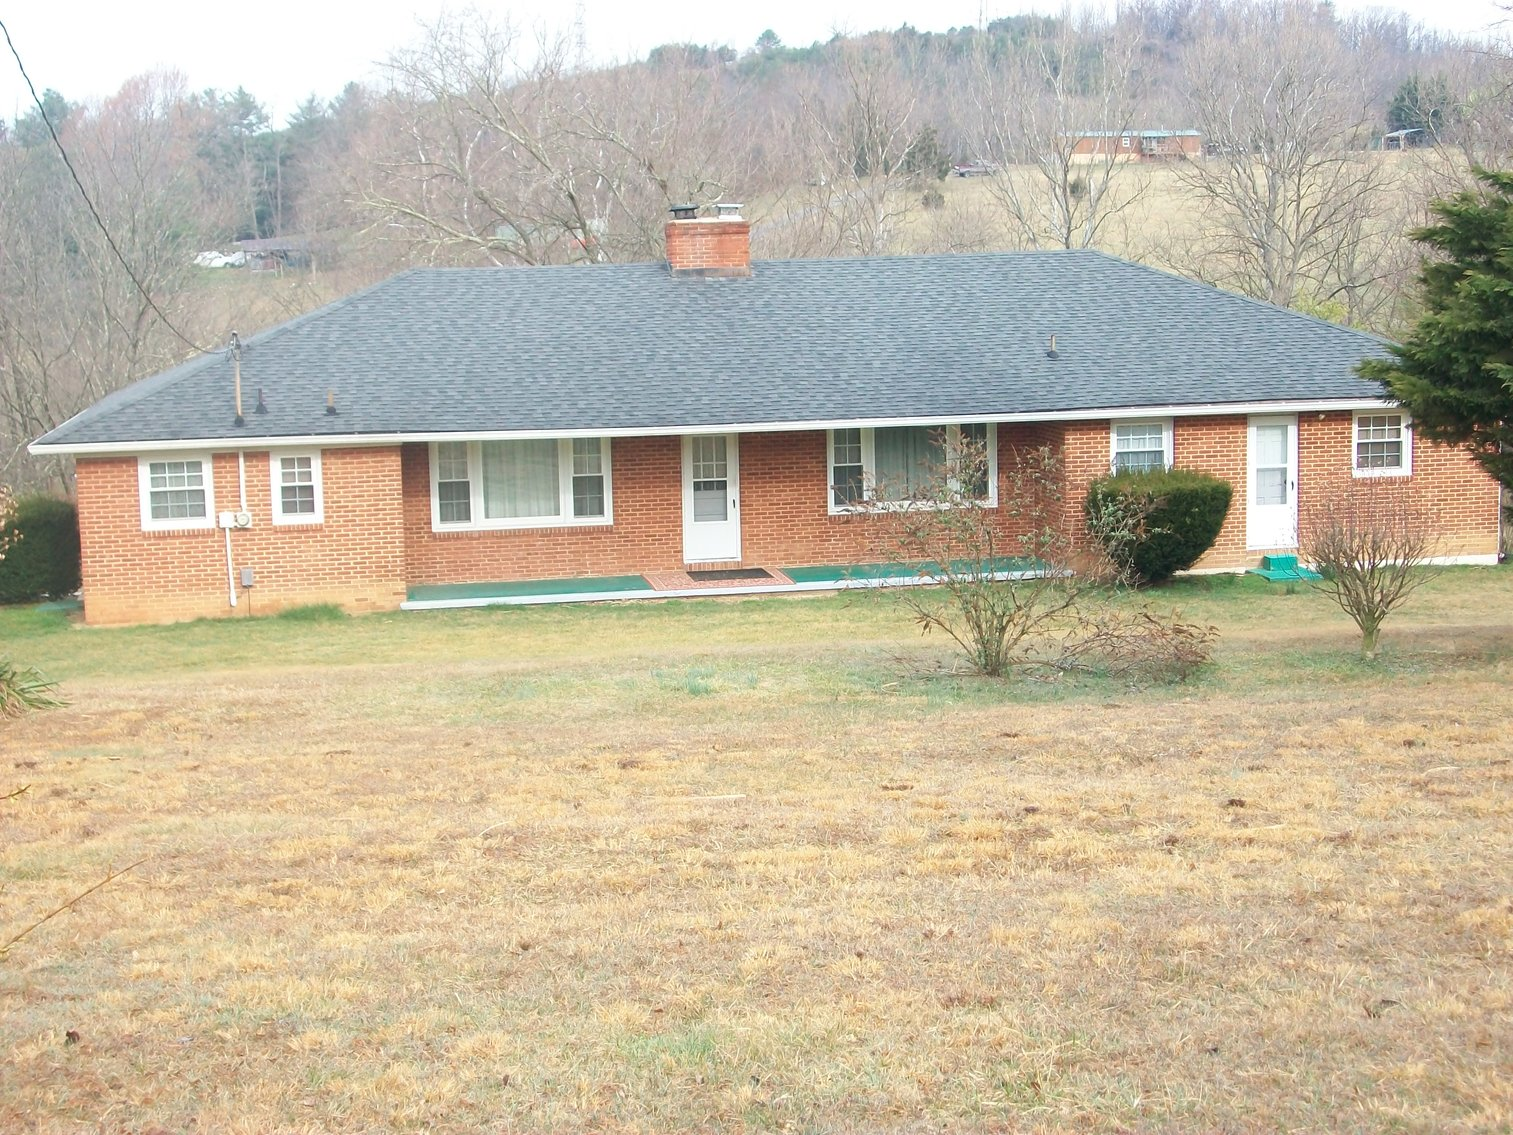 Image for REAL ESTATE AUCTION - 2.87± Acres (Staunton, VA)